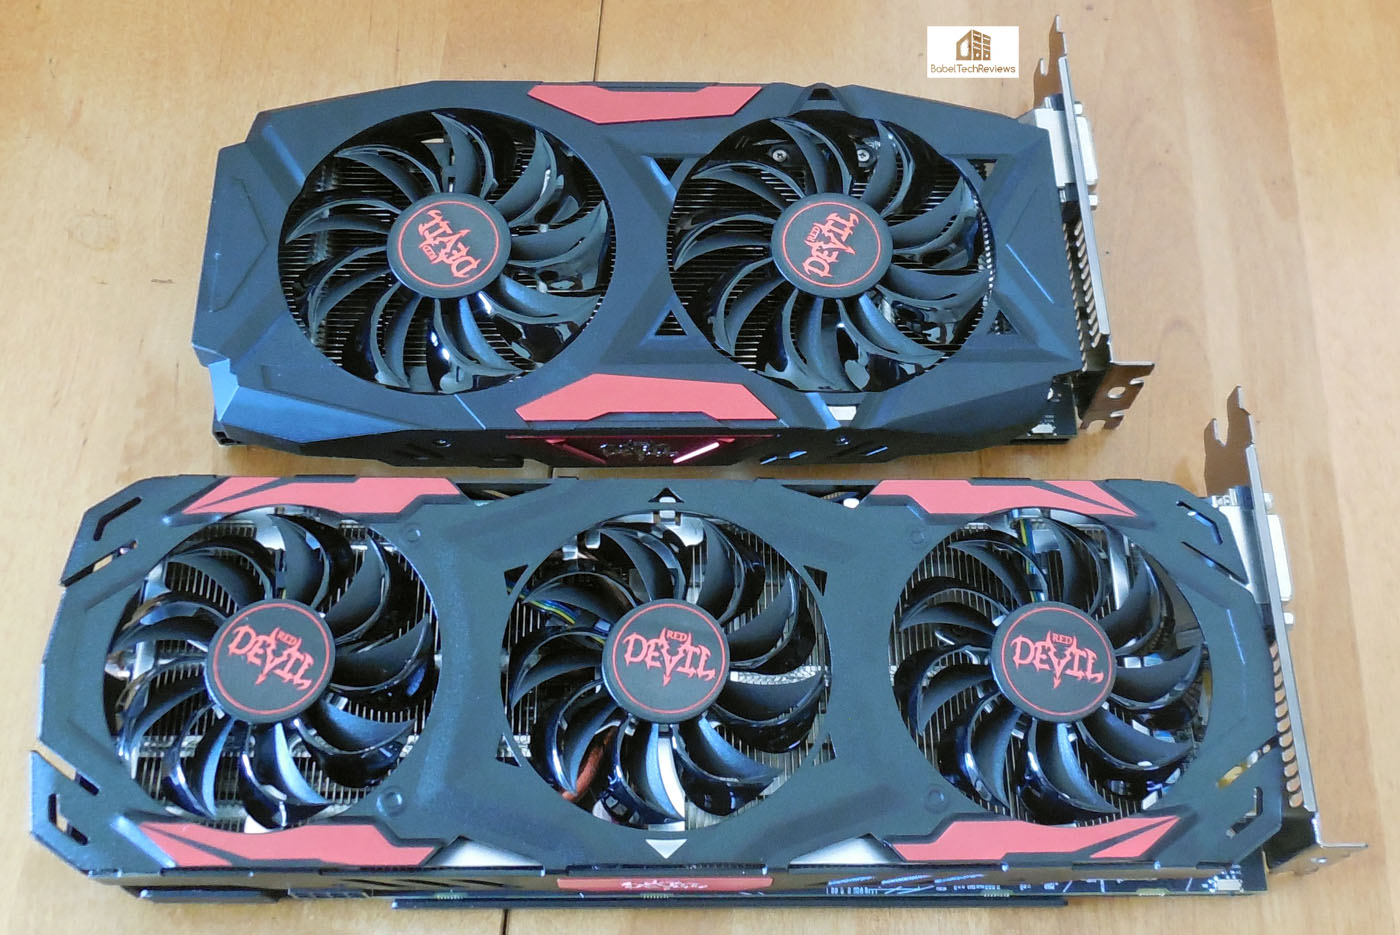 The Red Devil RX 480's